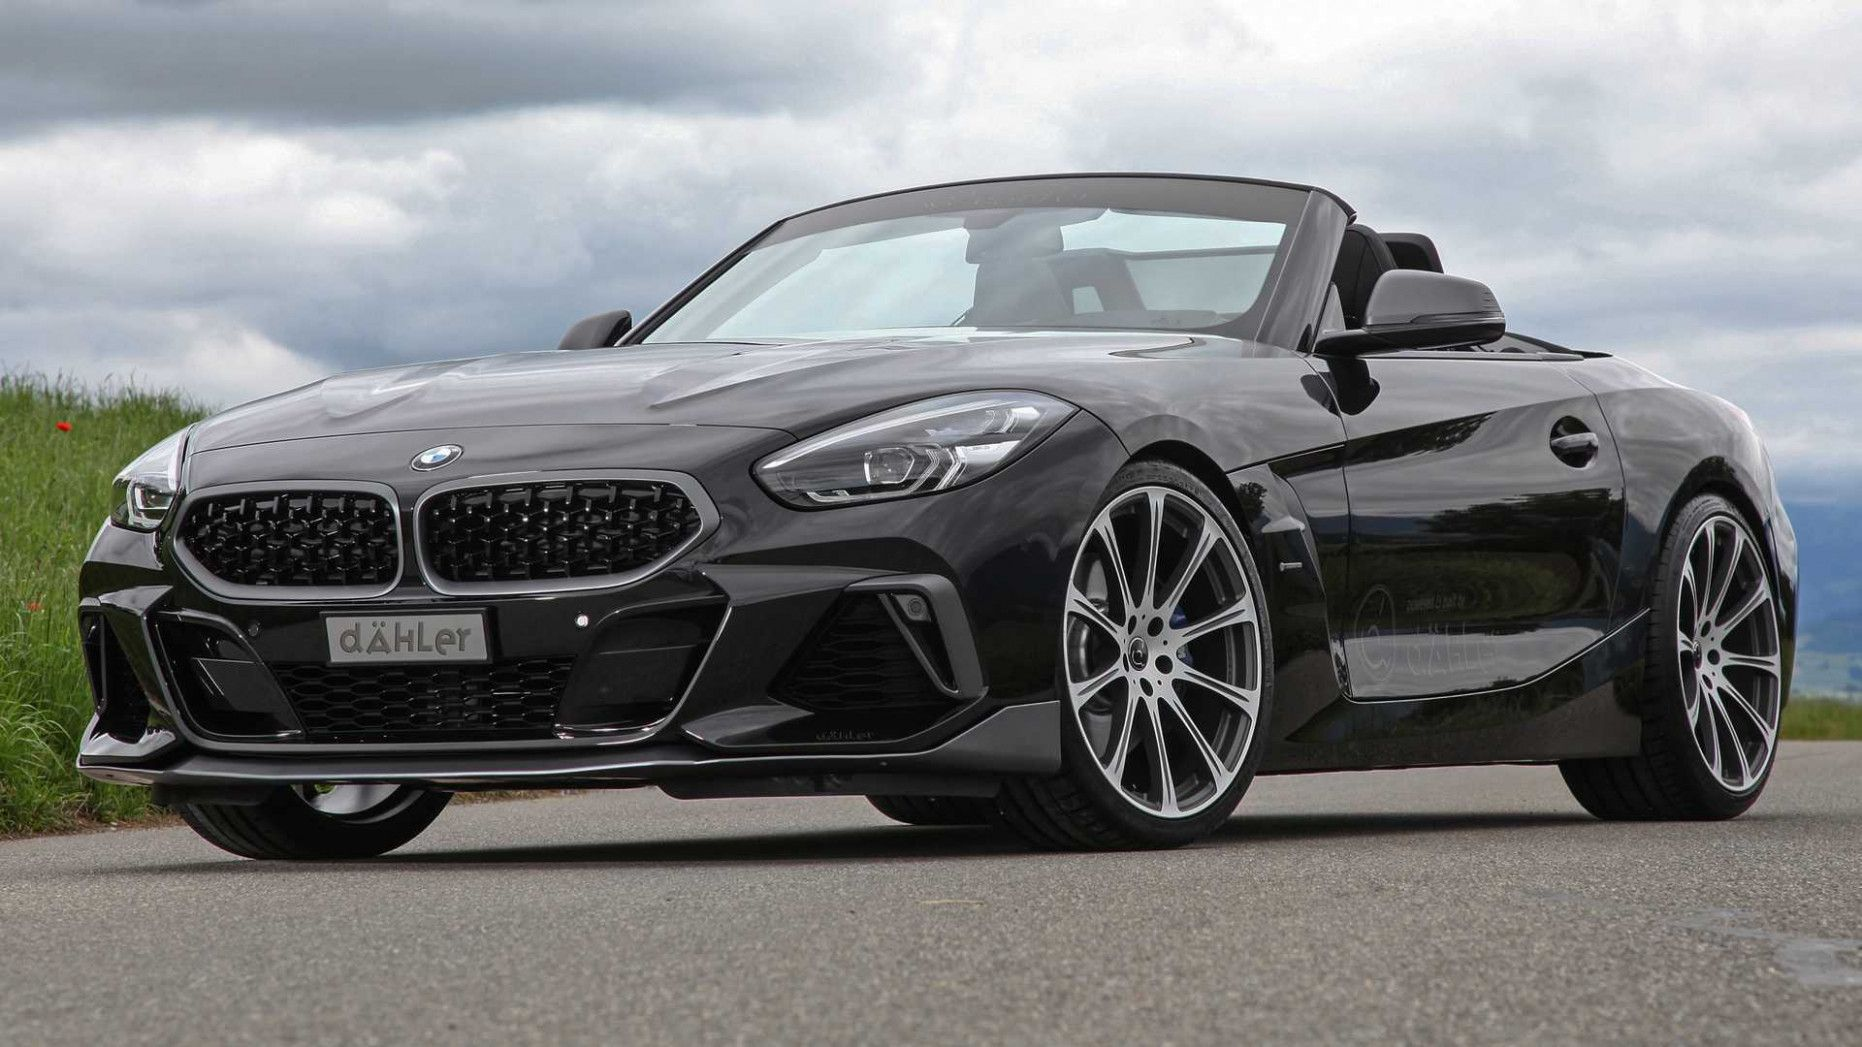 Bmw Z4 Coupe 2020 Exterior And Interior Di 2020 Dengan Gambar